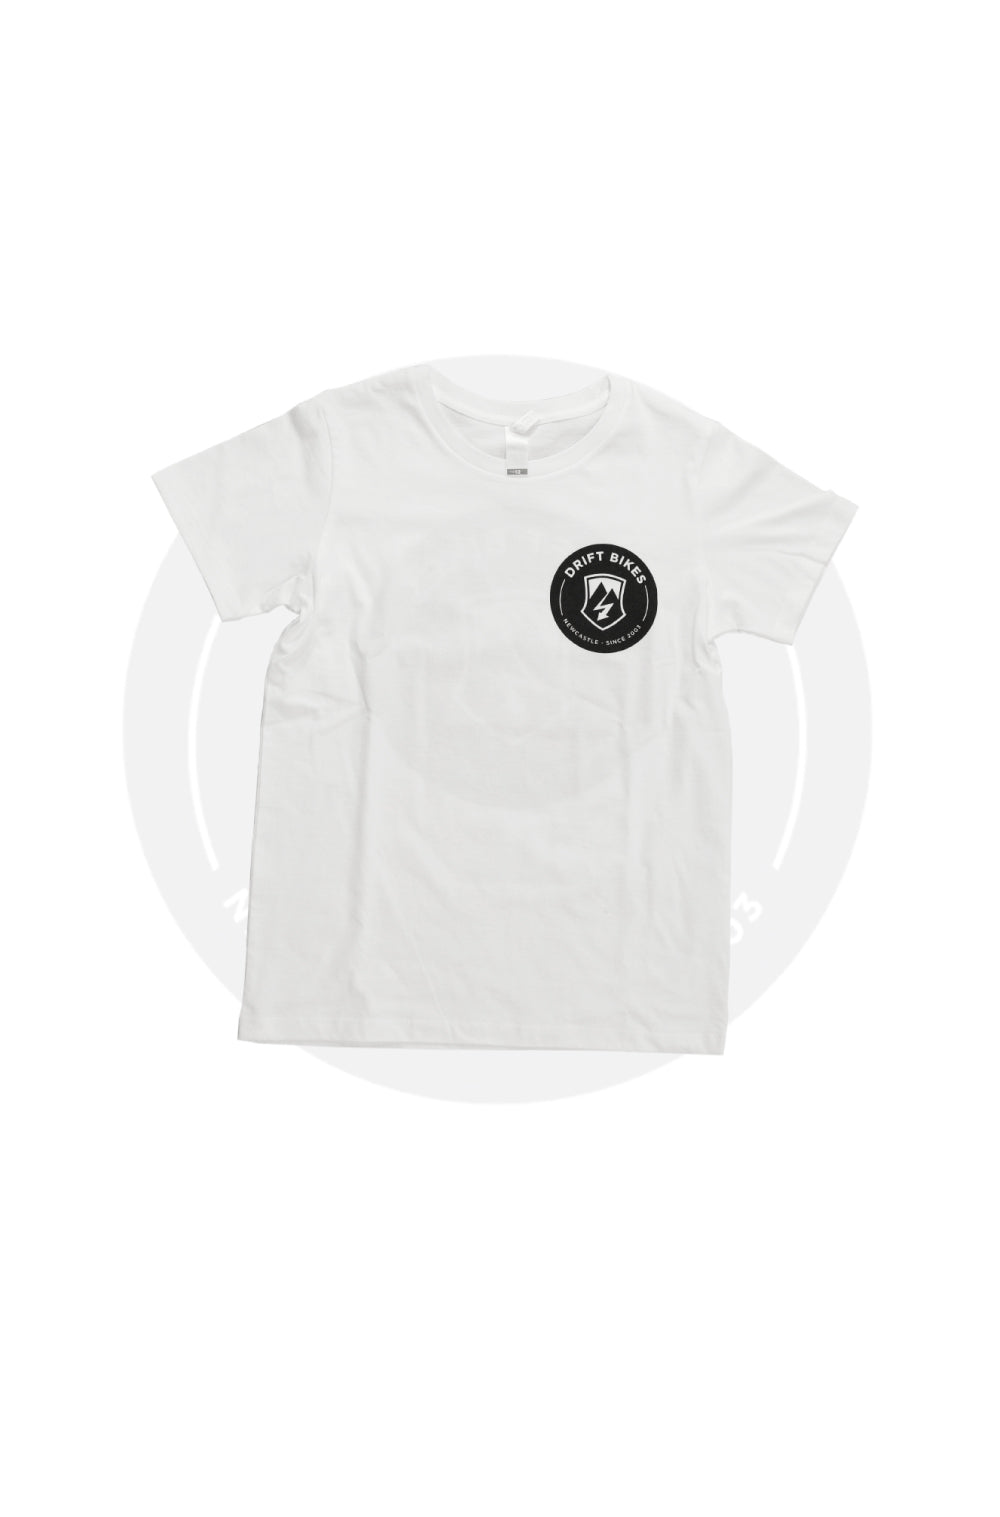 Drift Bikes Full Circle T-shirt White